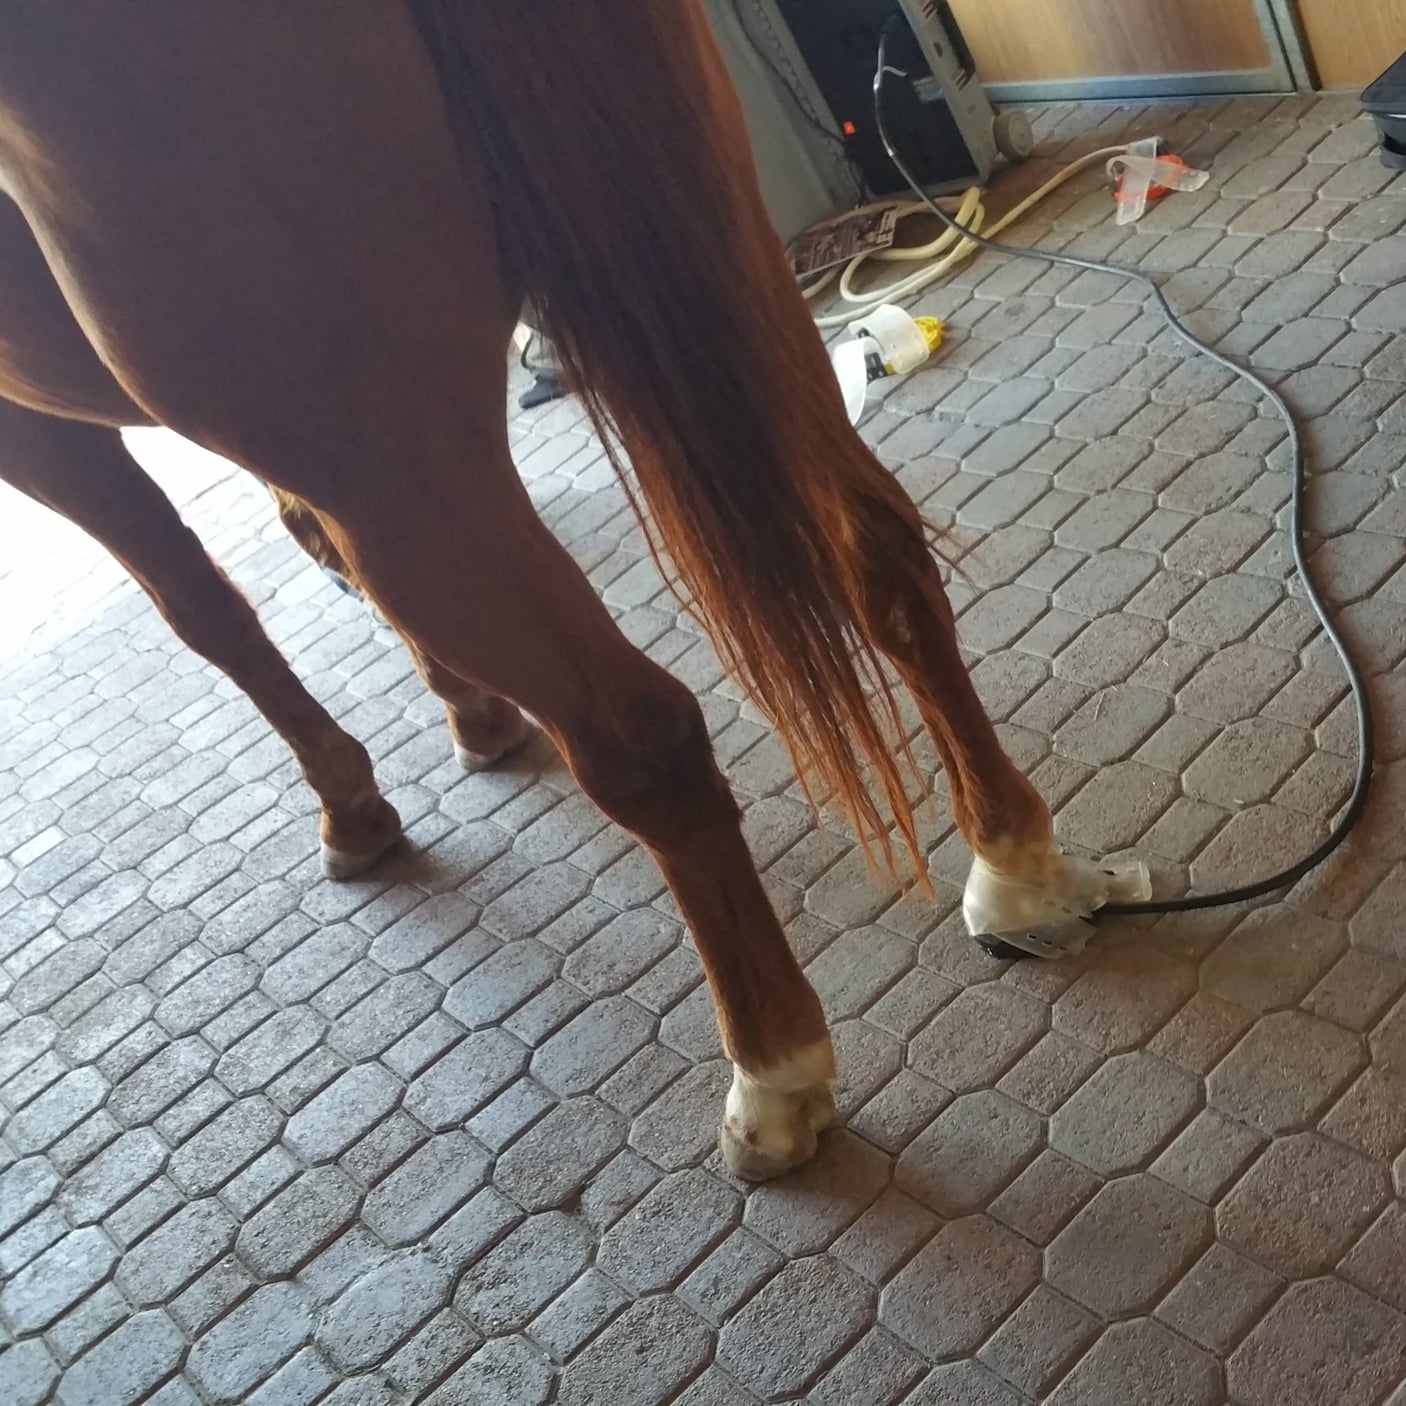 Hoof Pro with 10 ft lead connected to EquiPulse